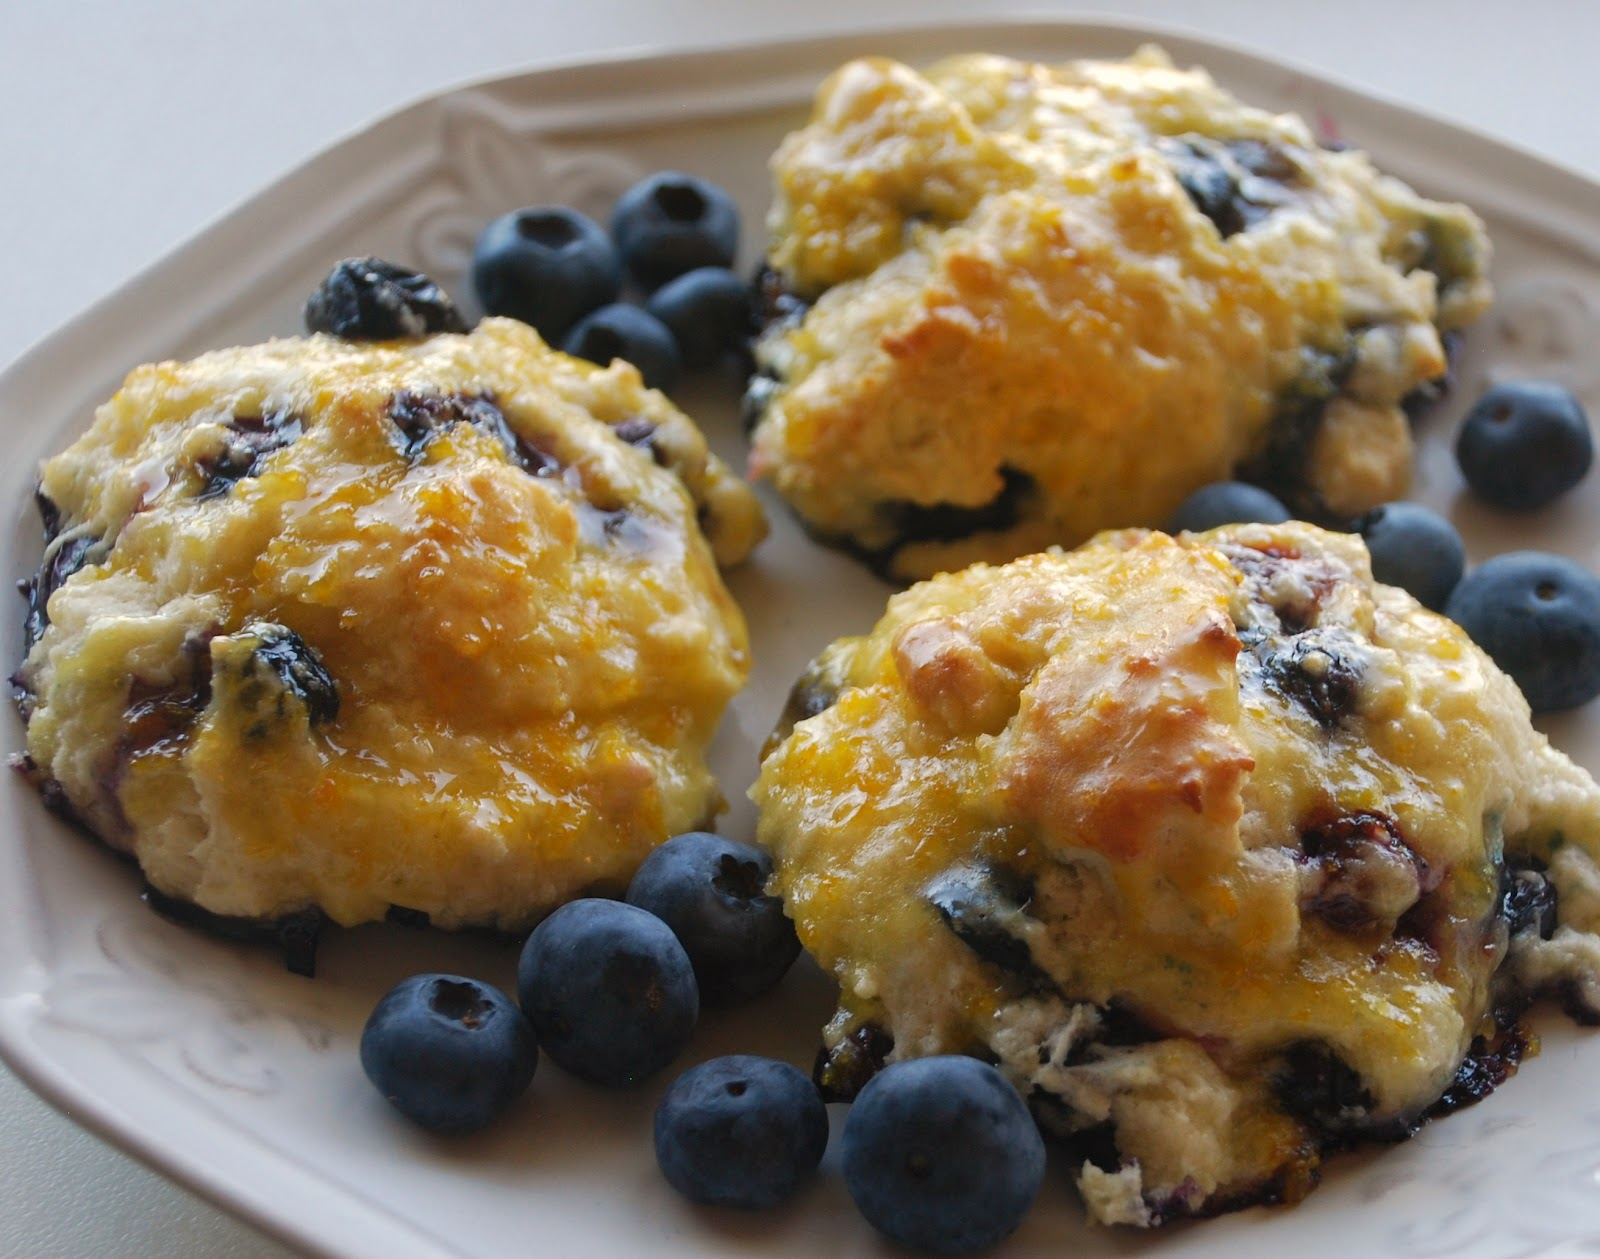 Everyday Insanity...: Orange Glazed Blueberry Scones